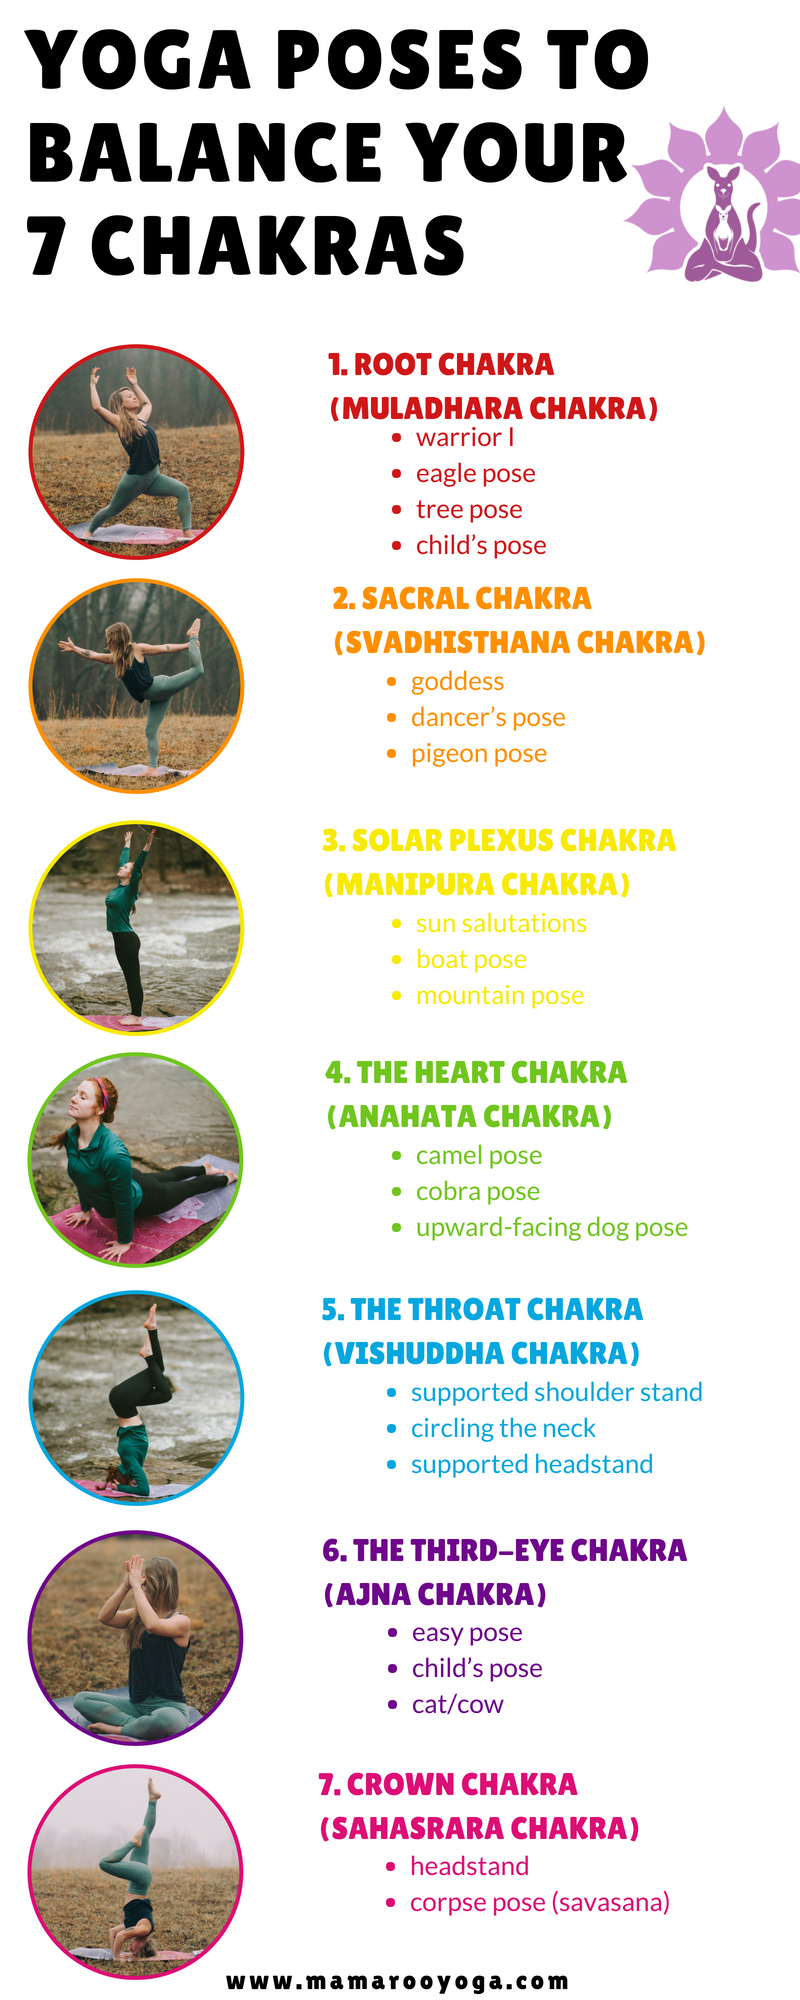 Yoga poses to balance your 7 chakras graphic